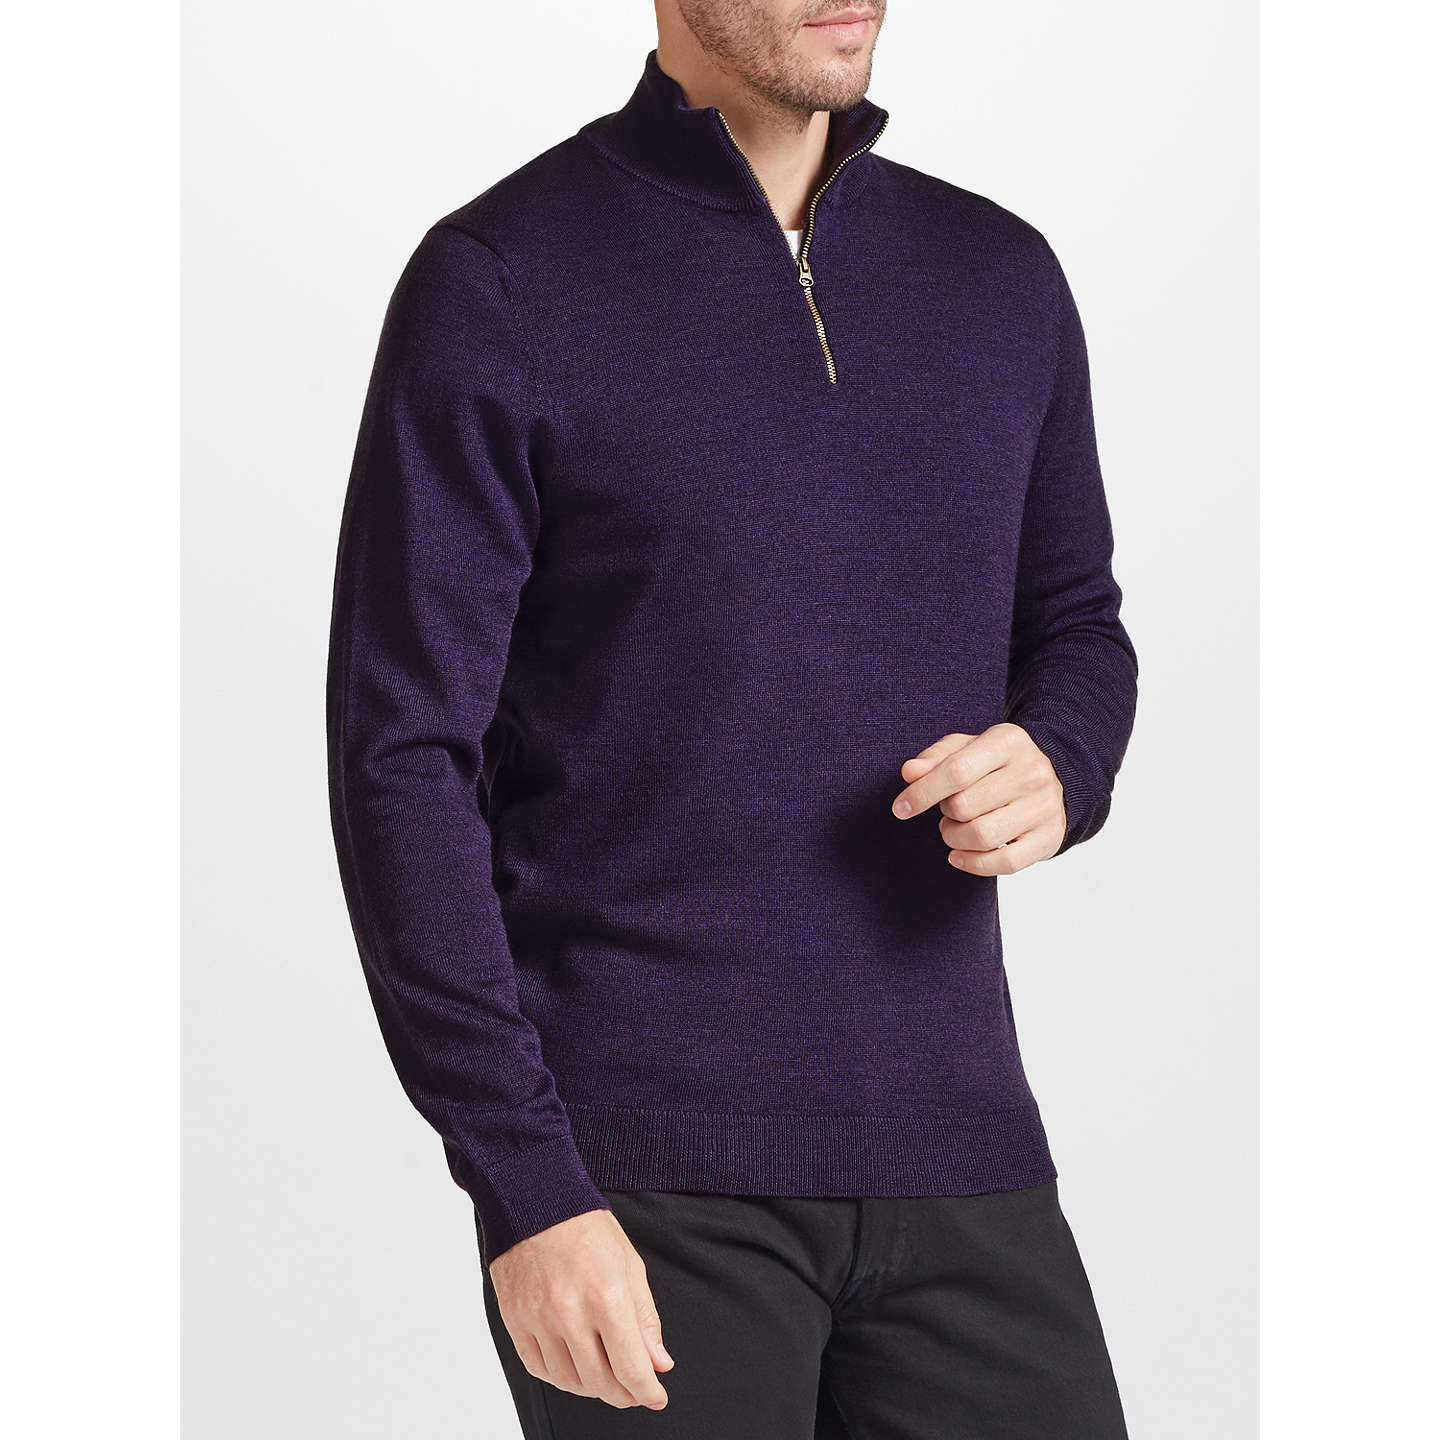 BuyJohn Lewis Merino Zip Neck Jumper, Purple, S Online at johnlewis.com